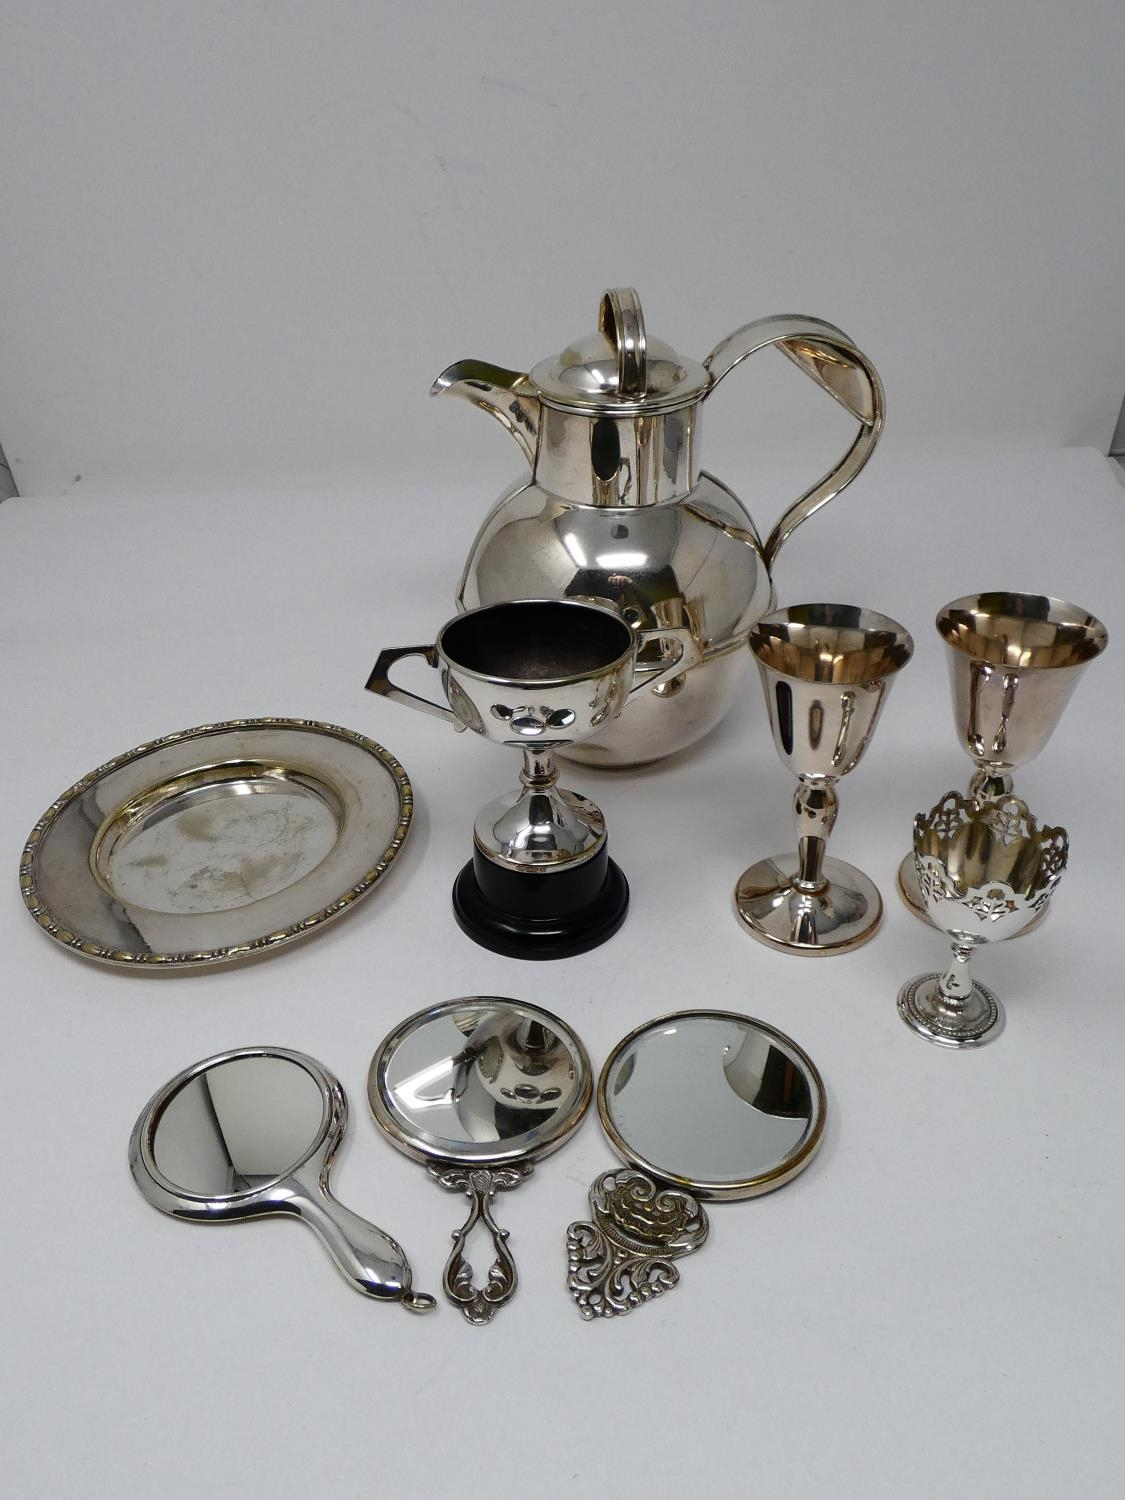 A collection of silver plated items; a hot water jug, trophy cups, card tray and hand mirrors (one